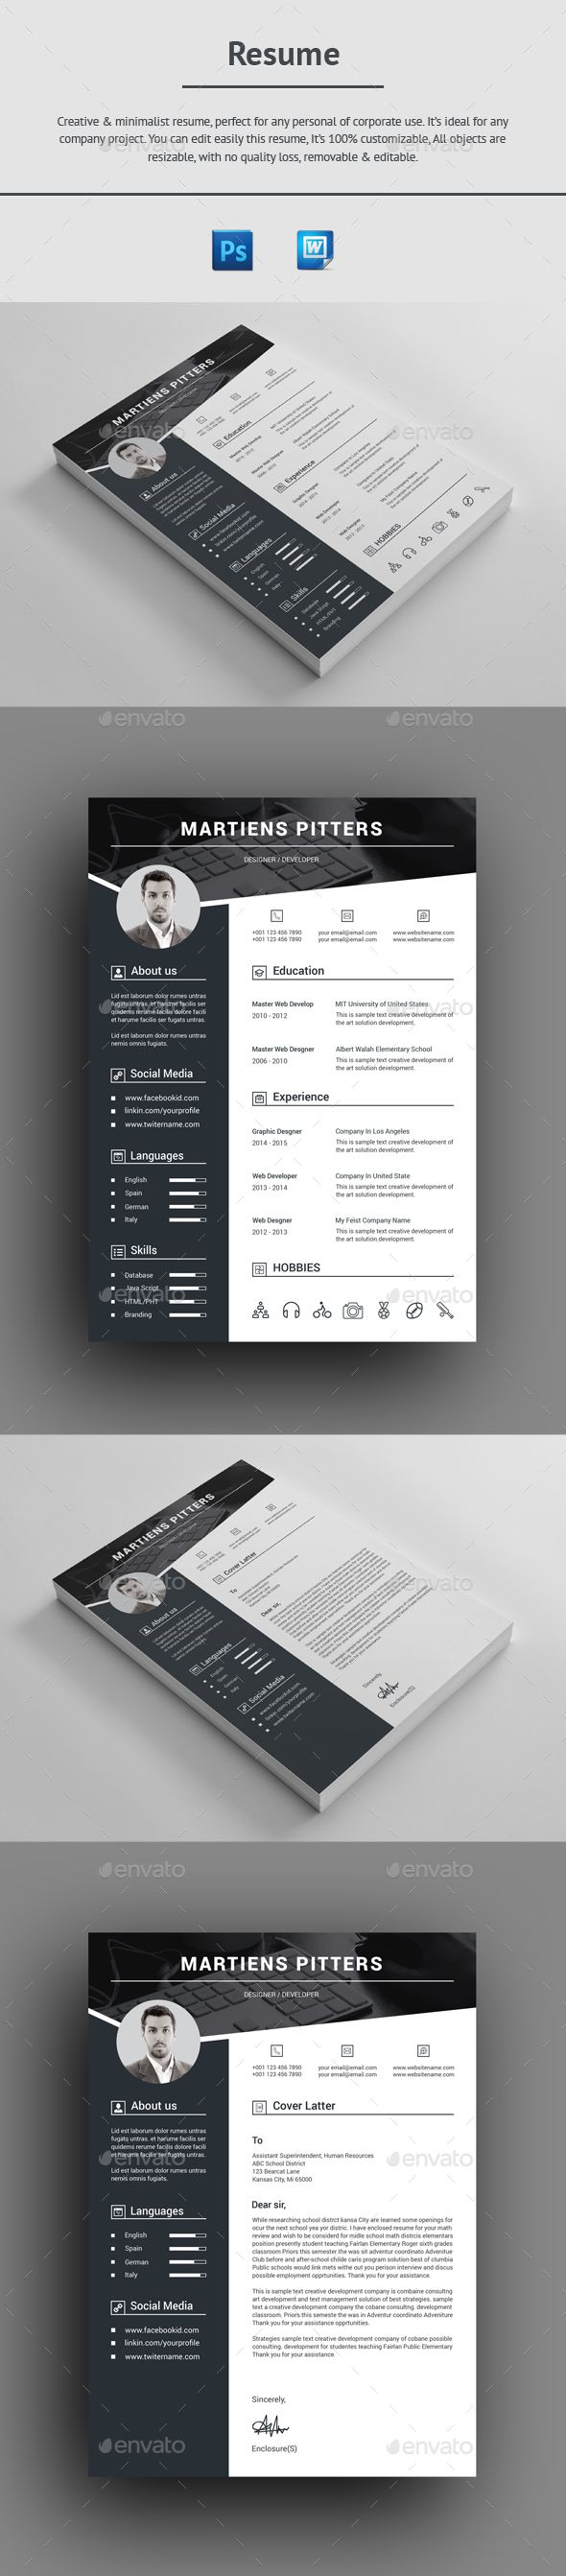 Resume Template PSD, MS Word | Resume Templates | Pinterest | Template,  Resume Ideas And Infographic Resume